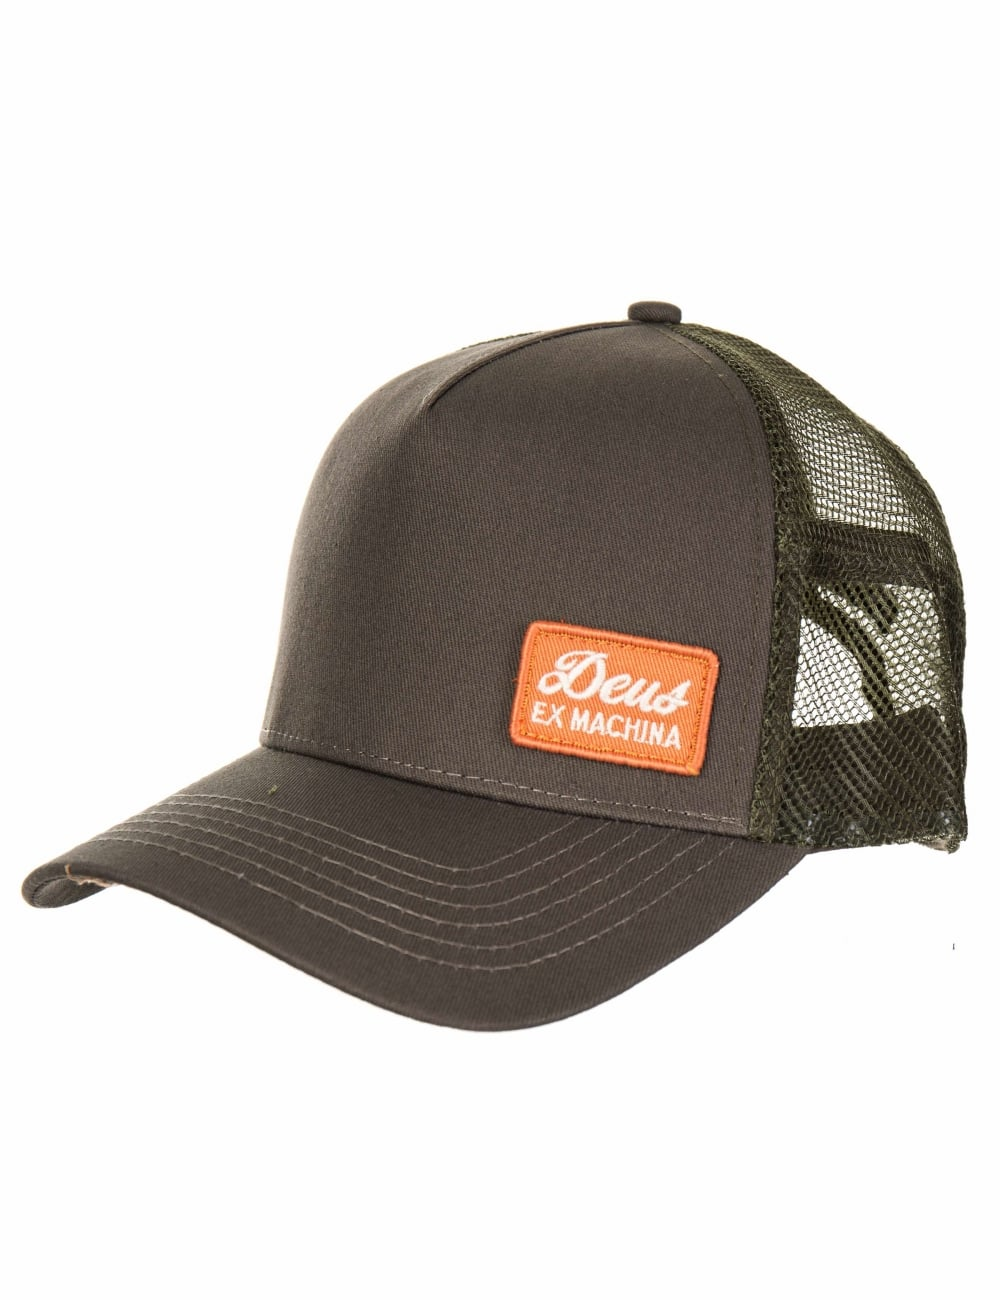 Deus Ex Machina Morgan 2 Trucker Hat - Olive - Hat Shop from Fat ... 1a4e3909648